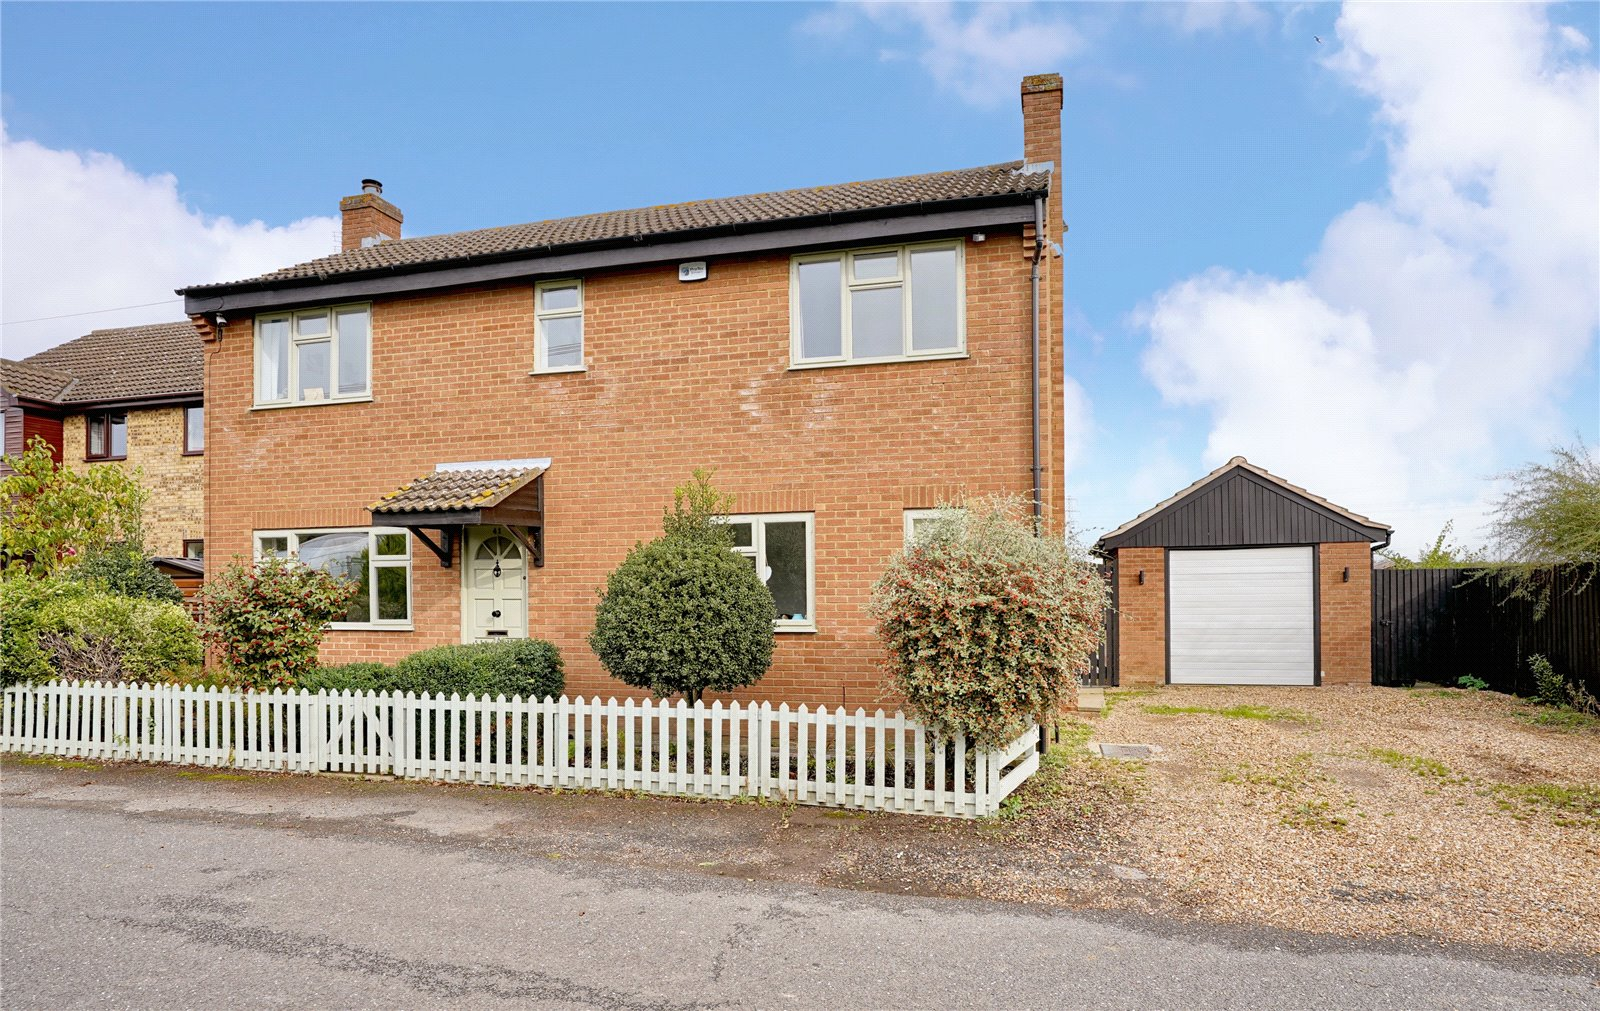 4 bed house for sale in St. Neots, PE19 5JA 0